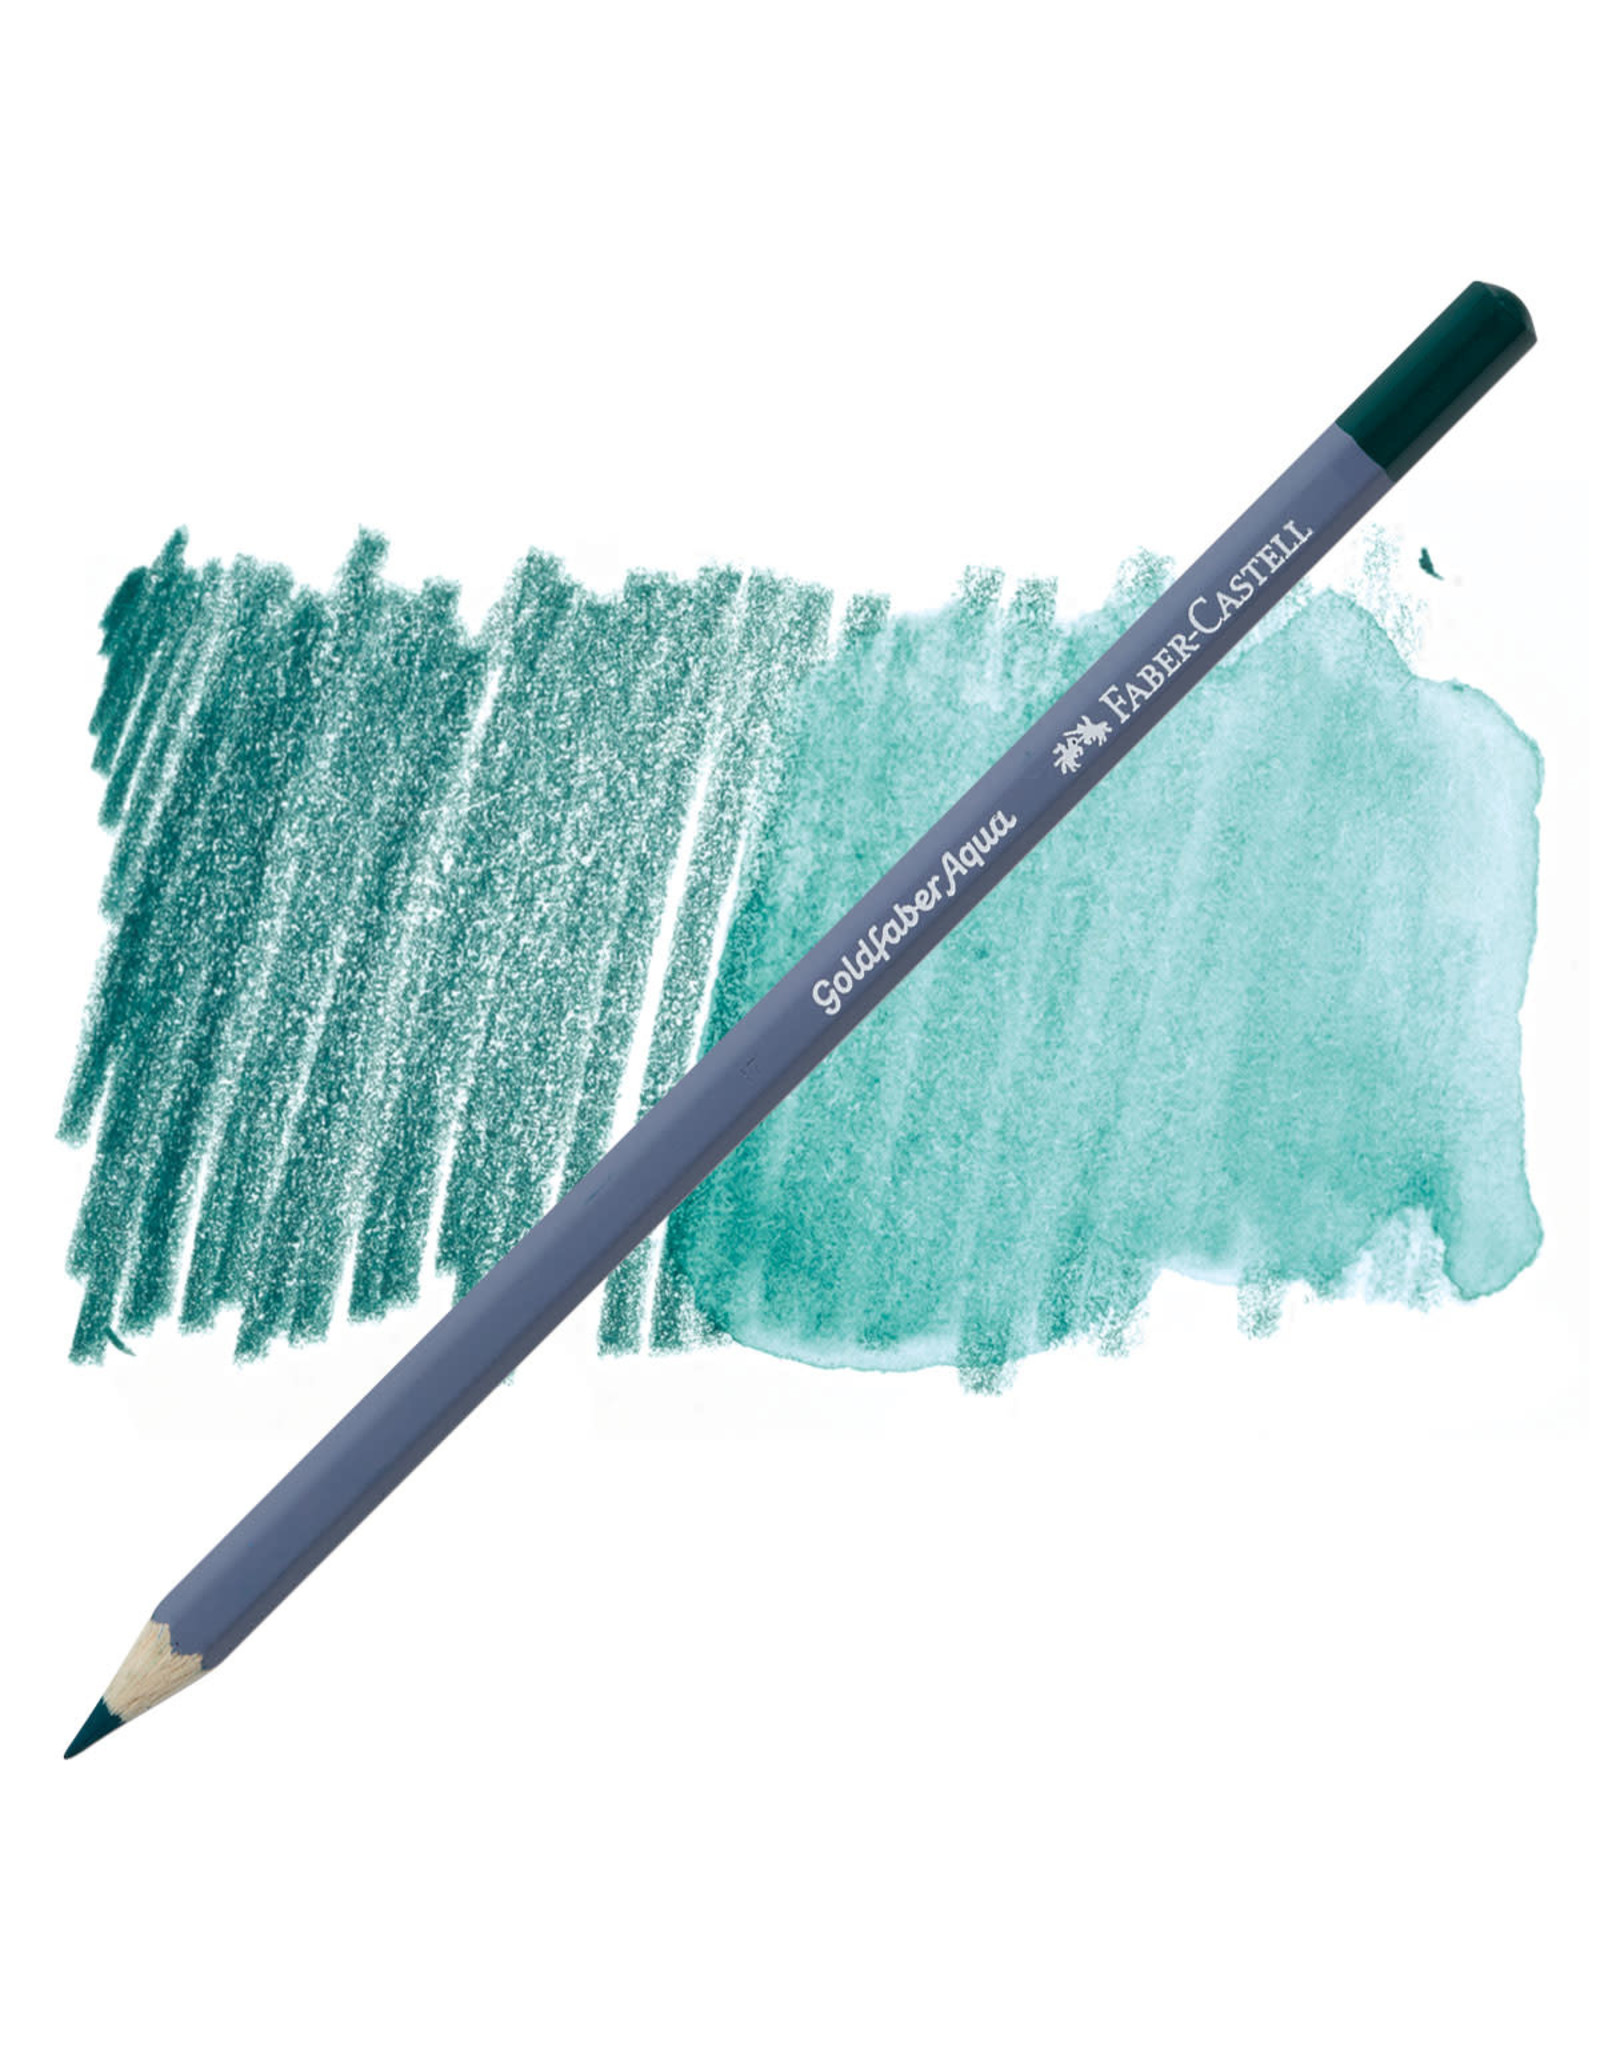 Faber-Castell Goldfaber Aqua Watercolor Pencil - Deep Cobalt Green #158